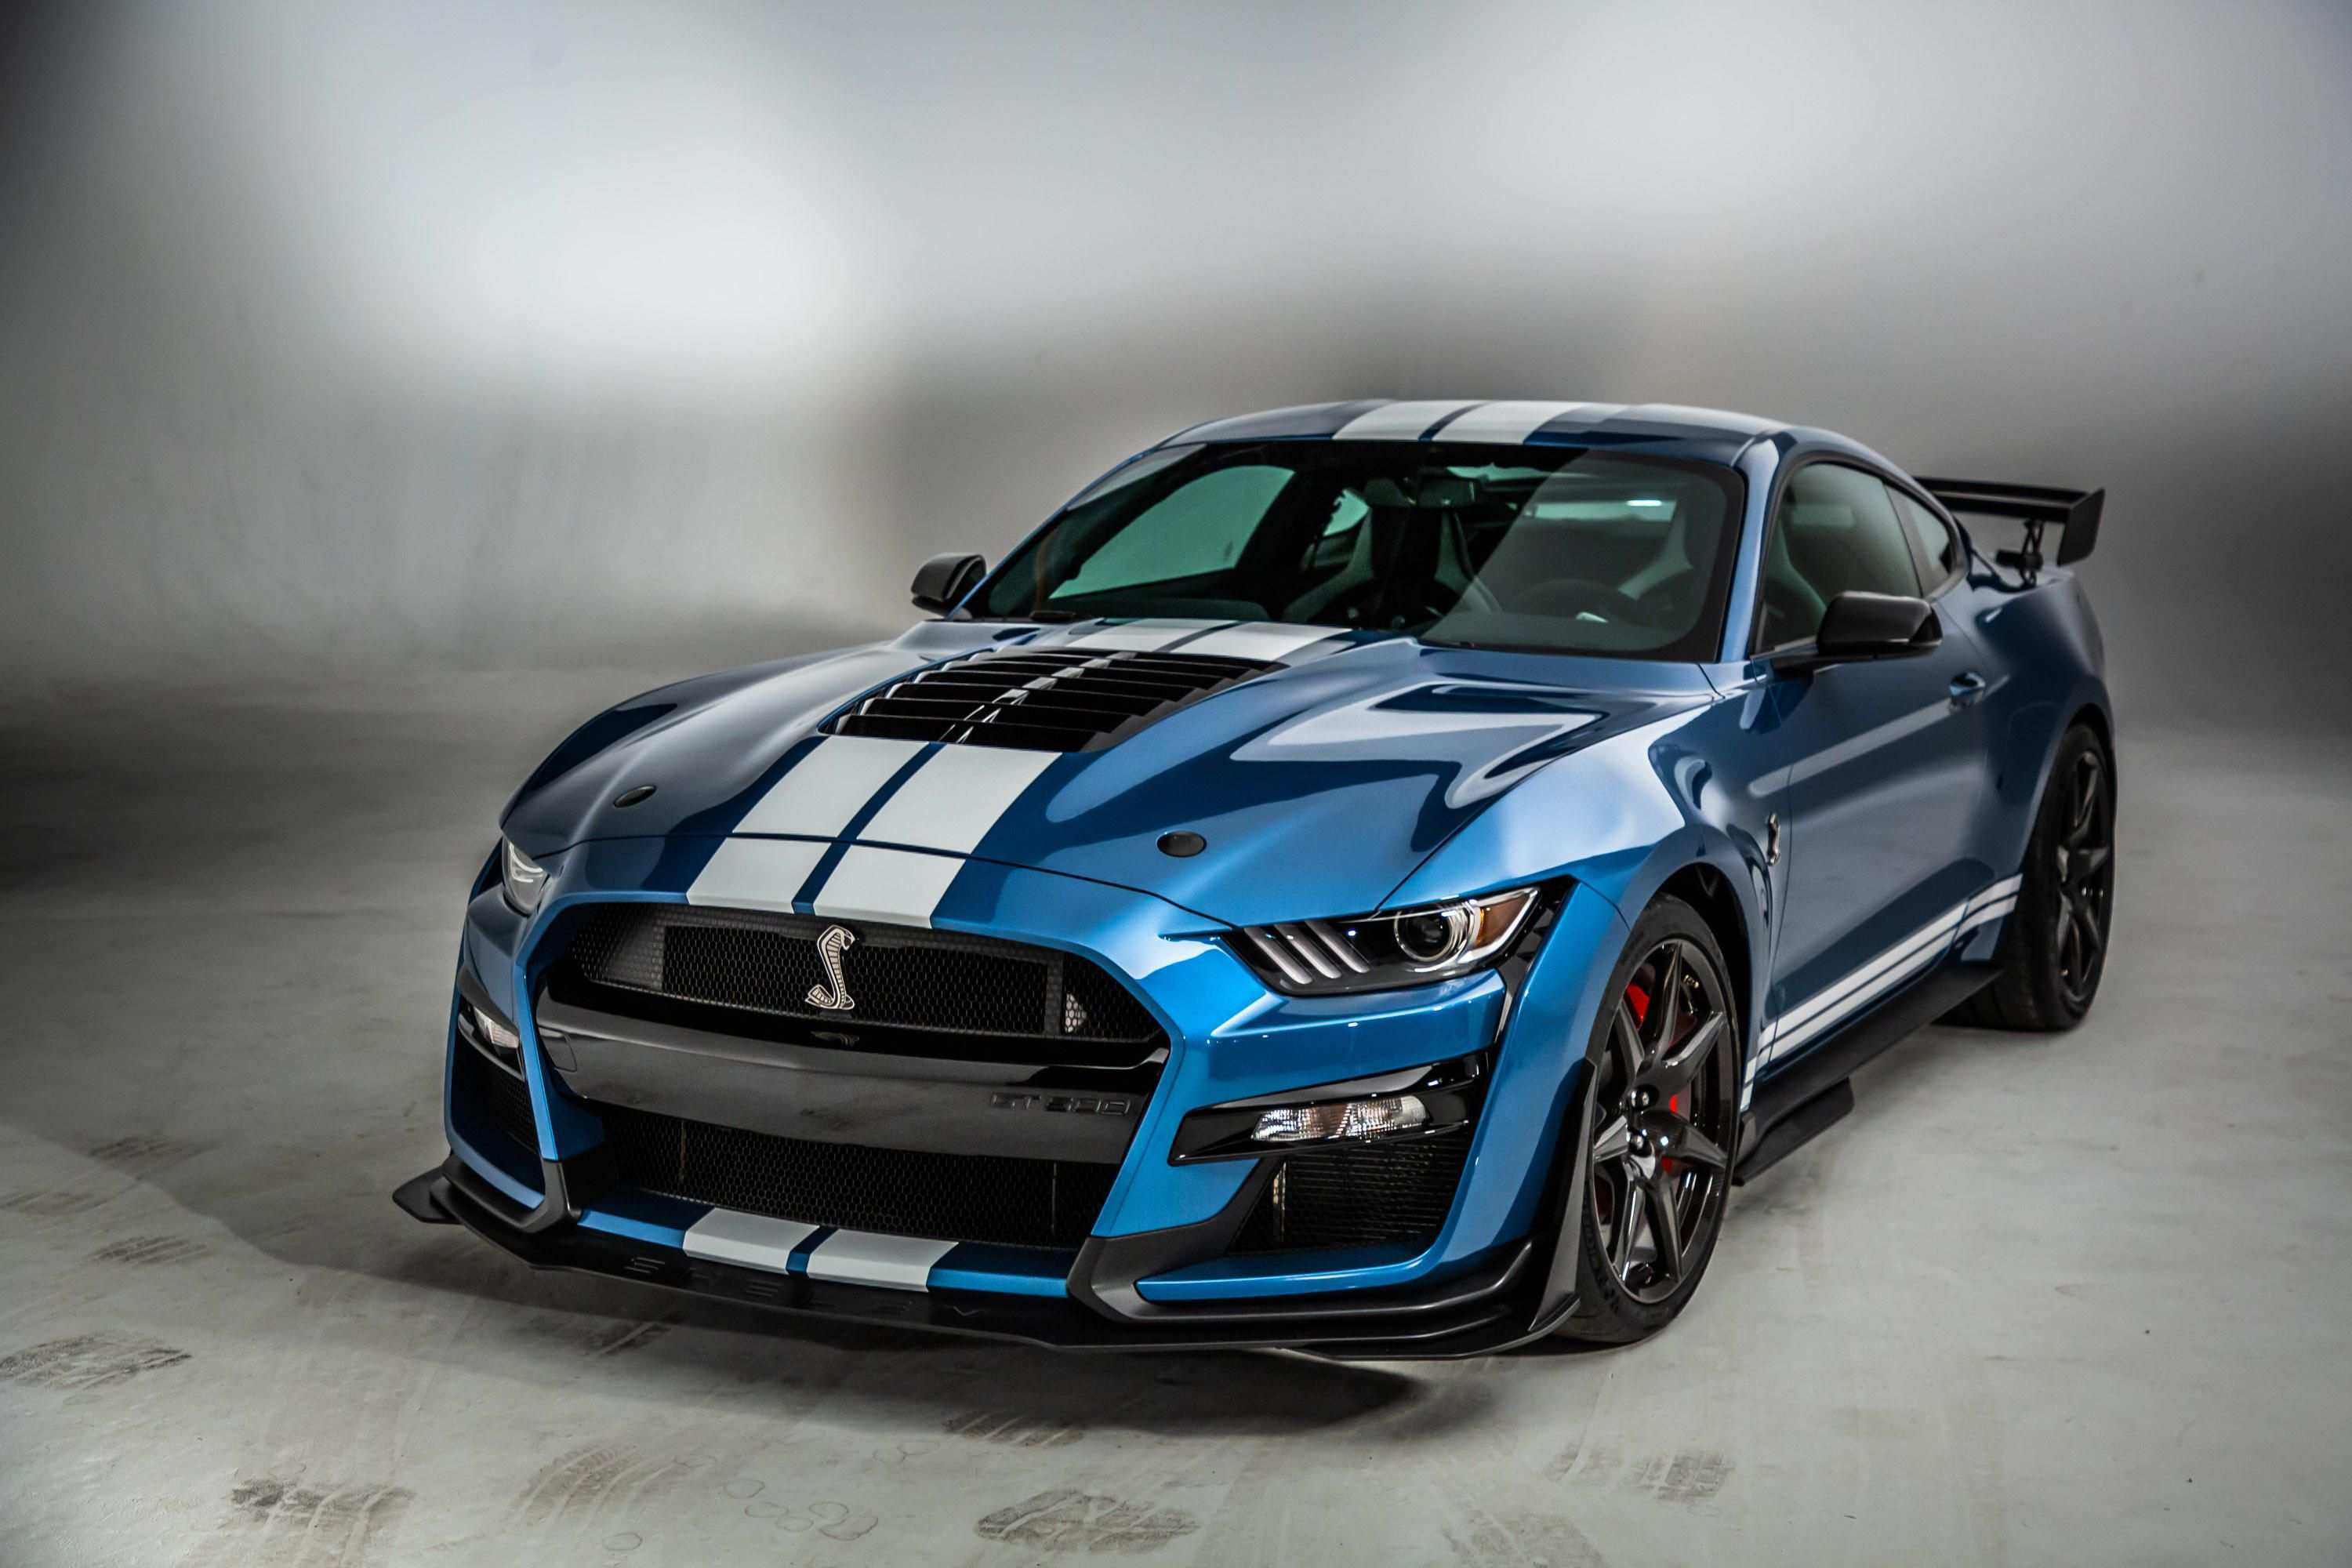 46 Best Ford Shelby Gt500 Price 2020 Concept